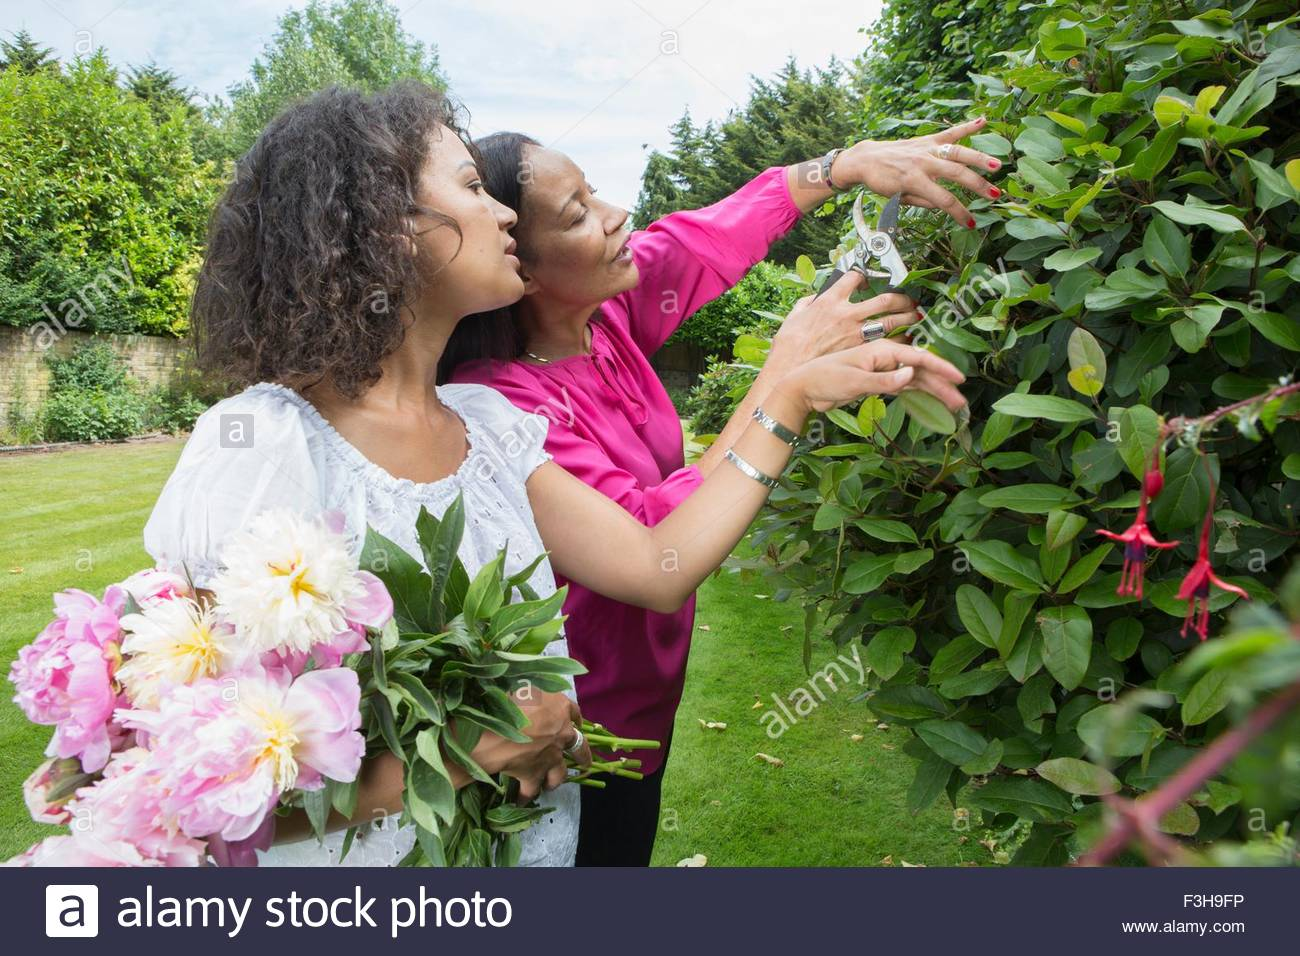 Mother and grown daughter in garden together - Stock Image